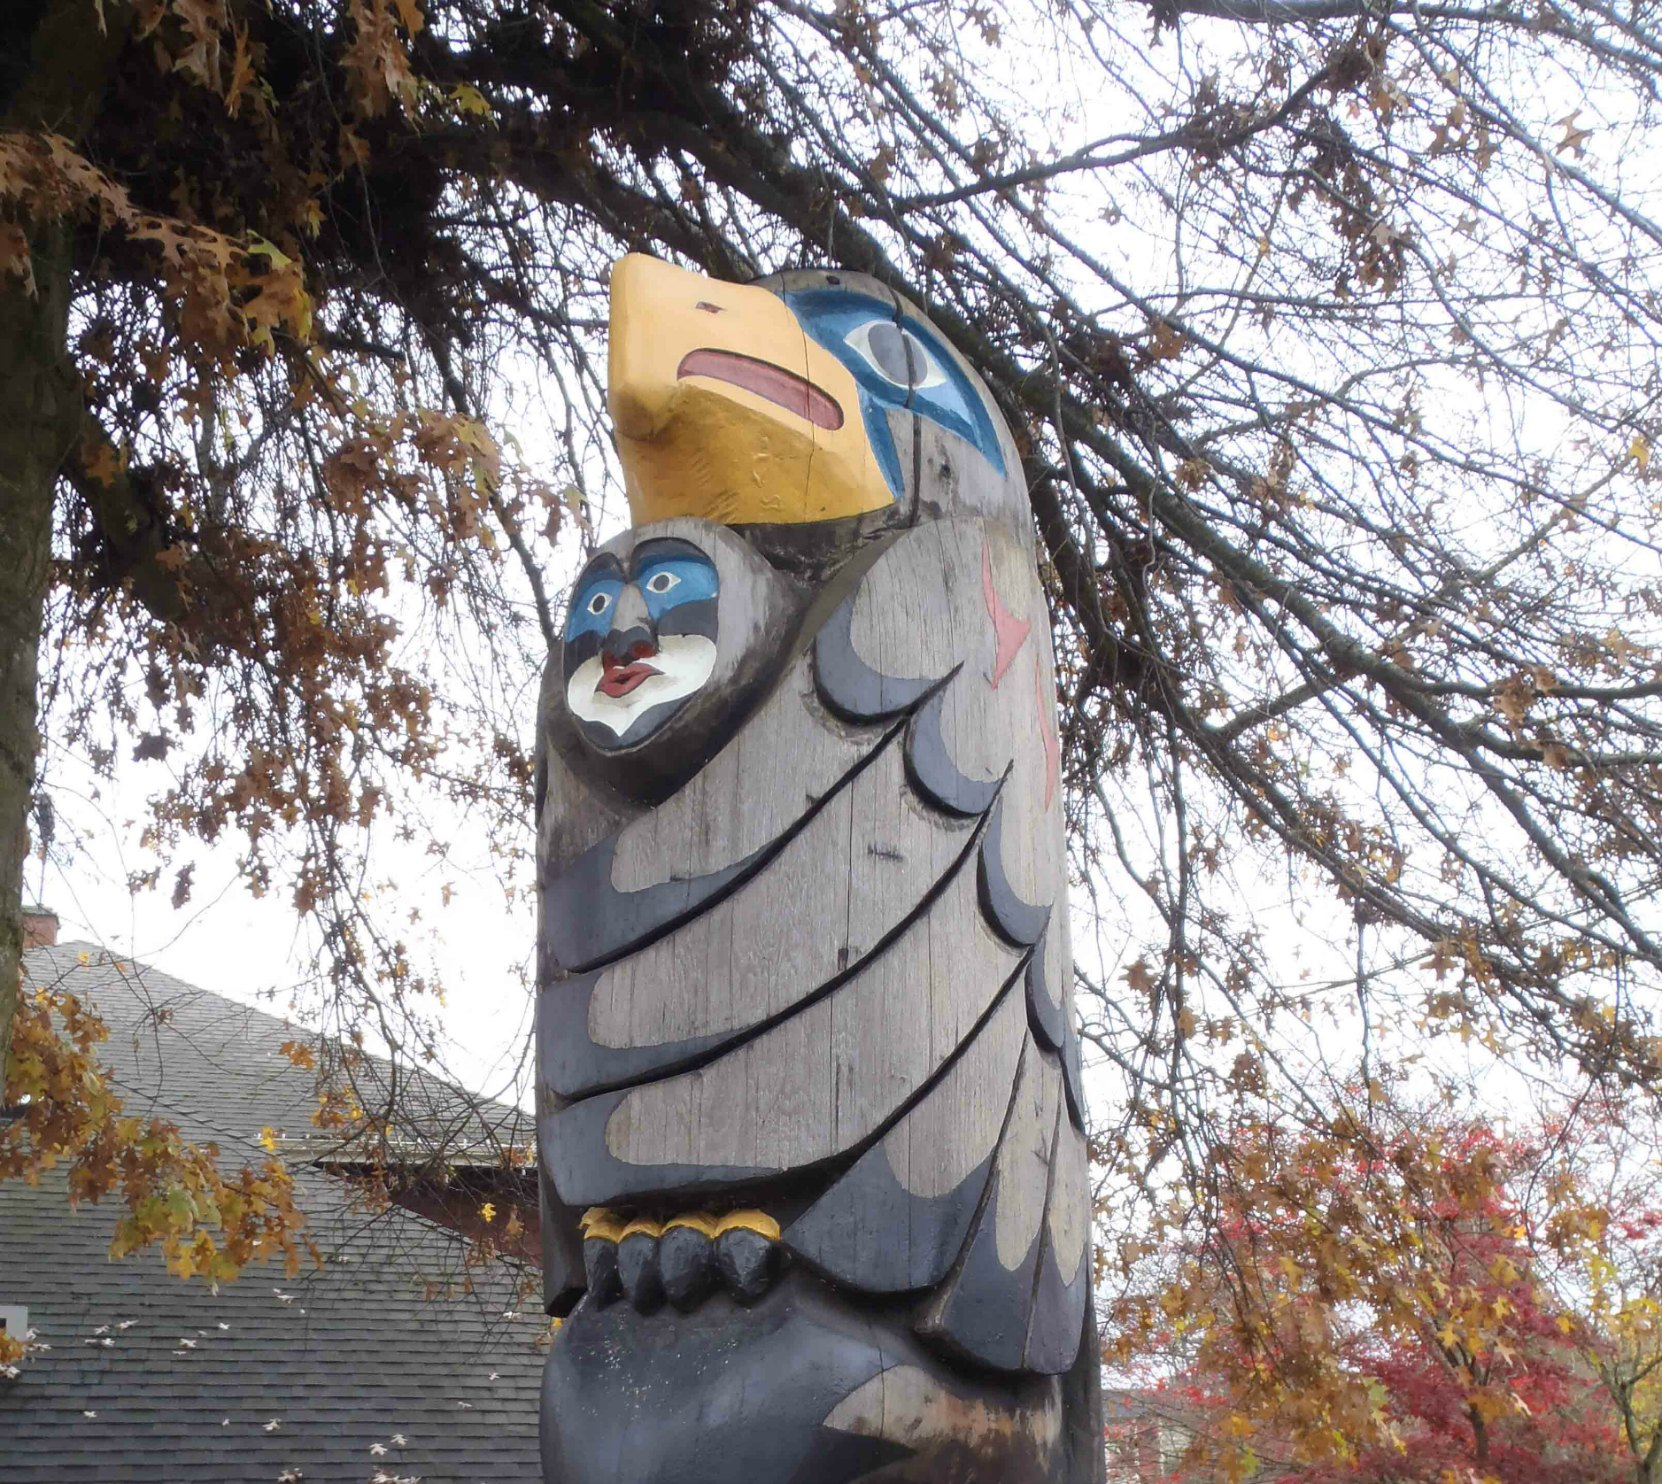 Transformation In Life totem pole, Eagle Guardian figure, Canada Avenue, Duncan, B.C.